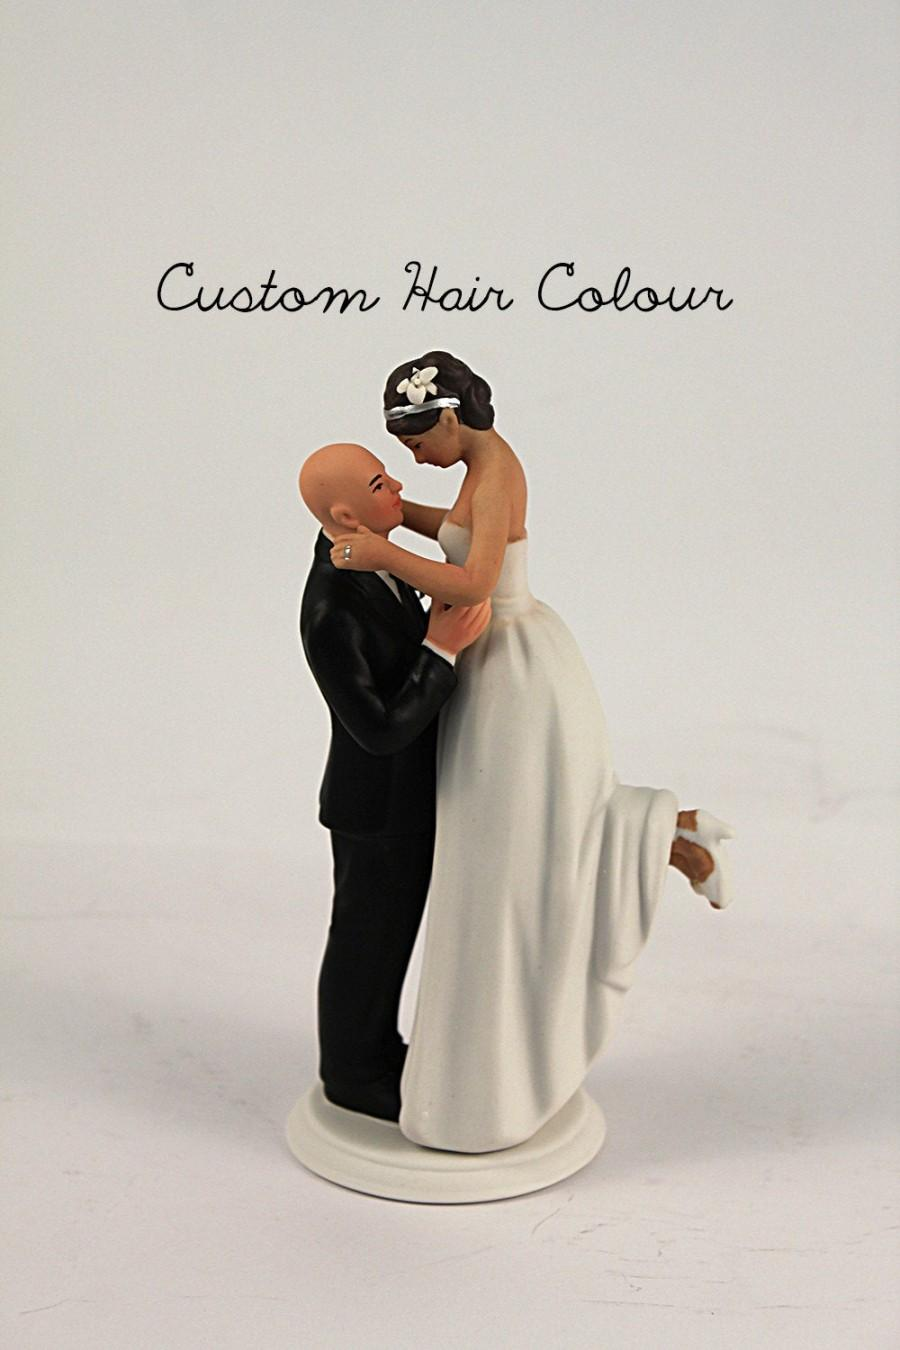 زفاف - True Romance Interlocking Wedding Cake Topper - Light Skin Tone Bald Groom and Medium Skin Tone Bride - Custom Wedding Cake Topper - Wedding